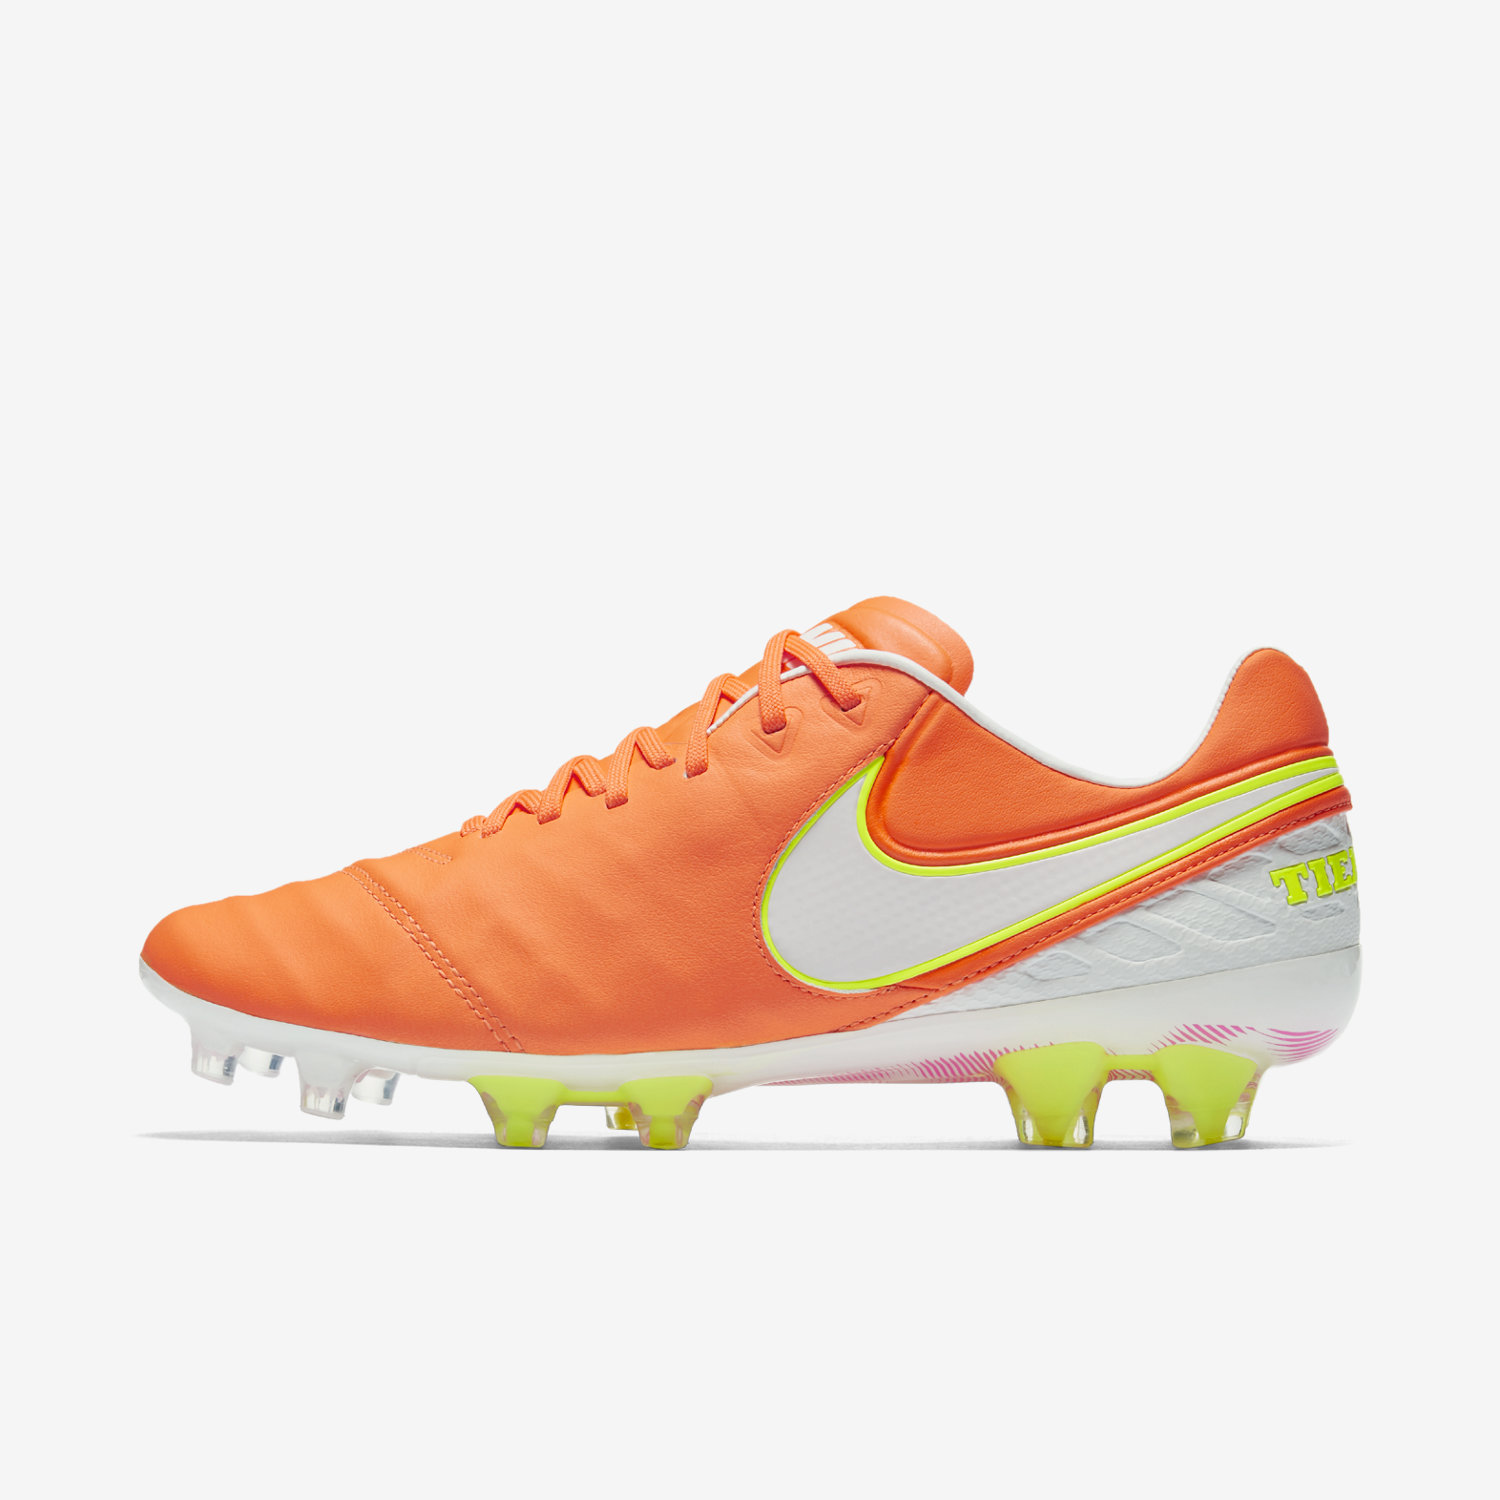 newest 49a06 92362 Nike Tiempo Legend VI FG Women's - Orange/White